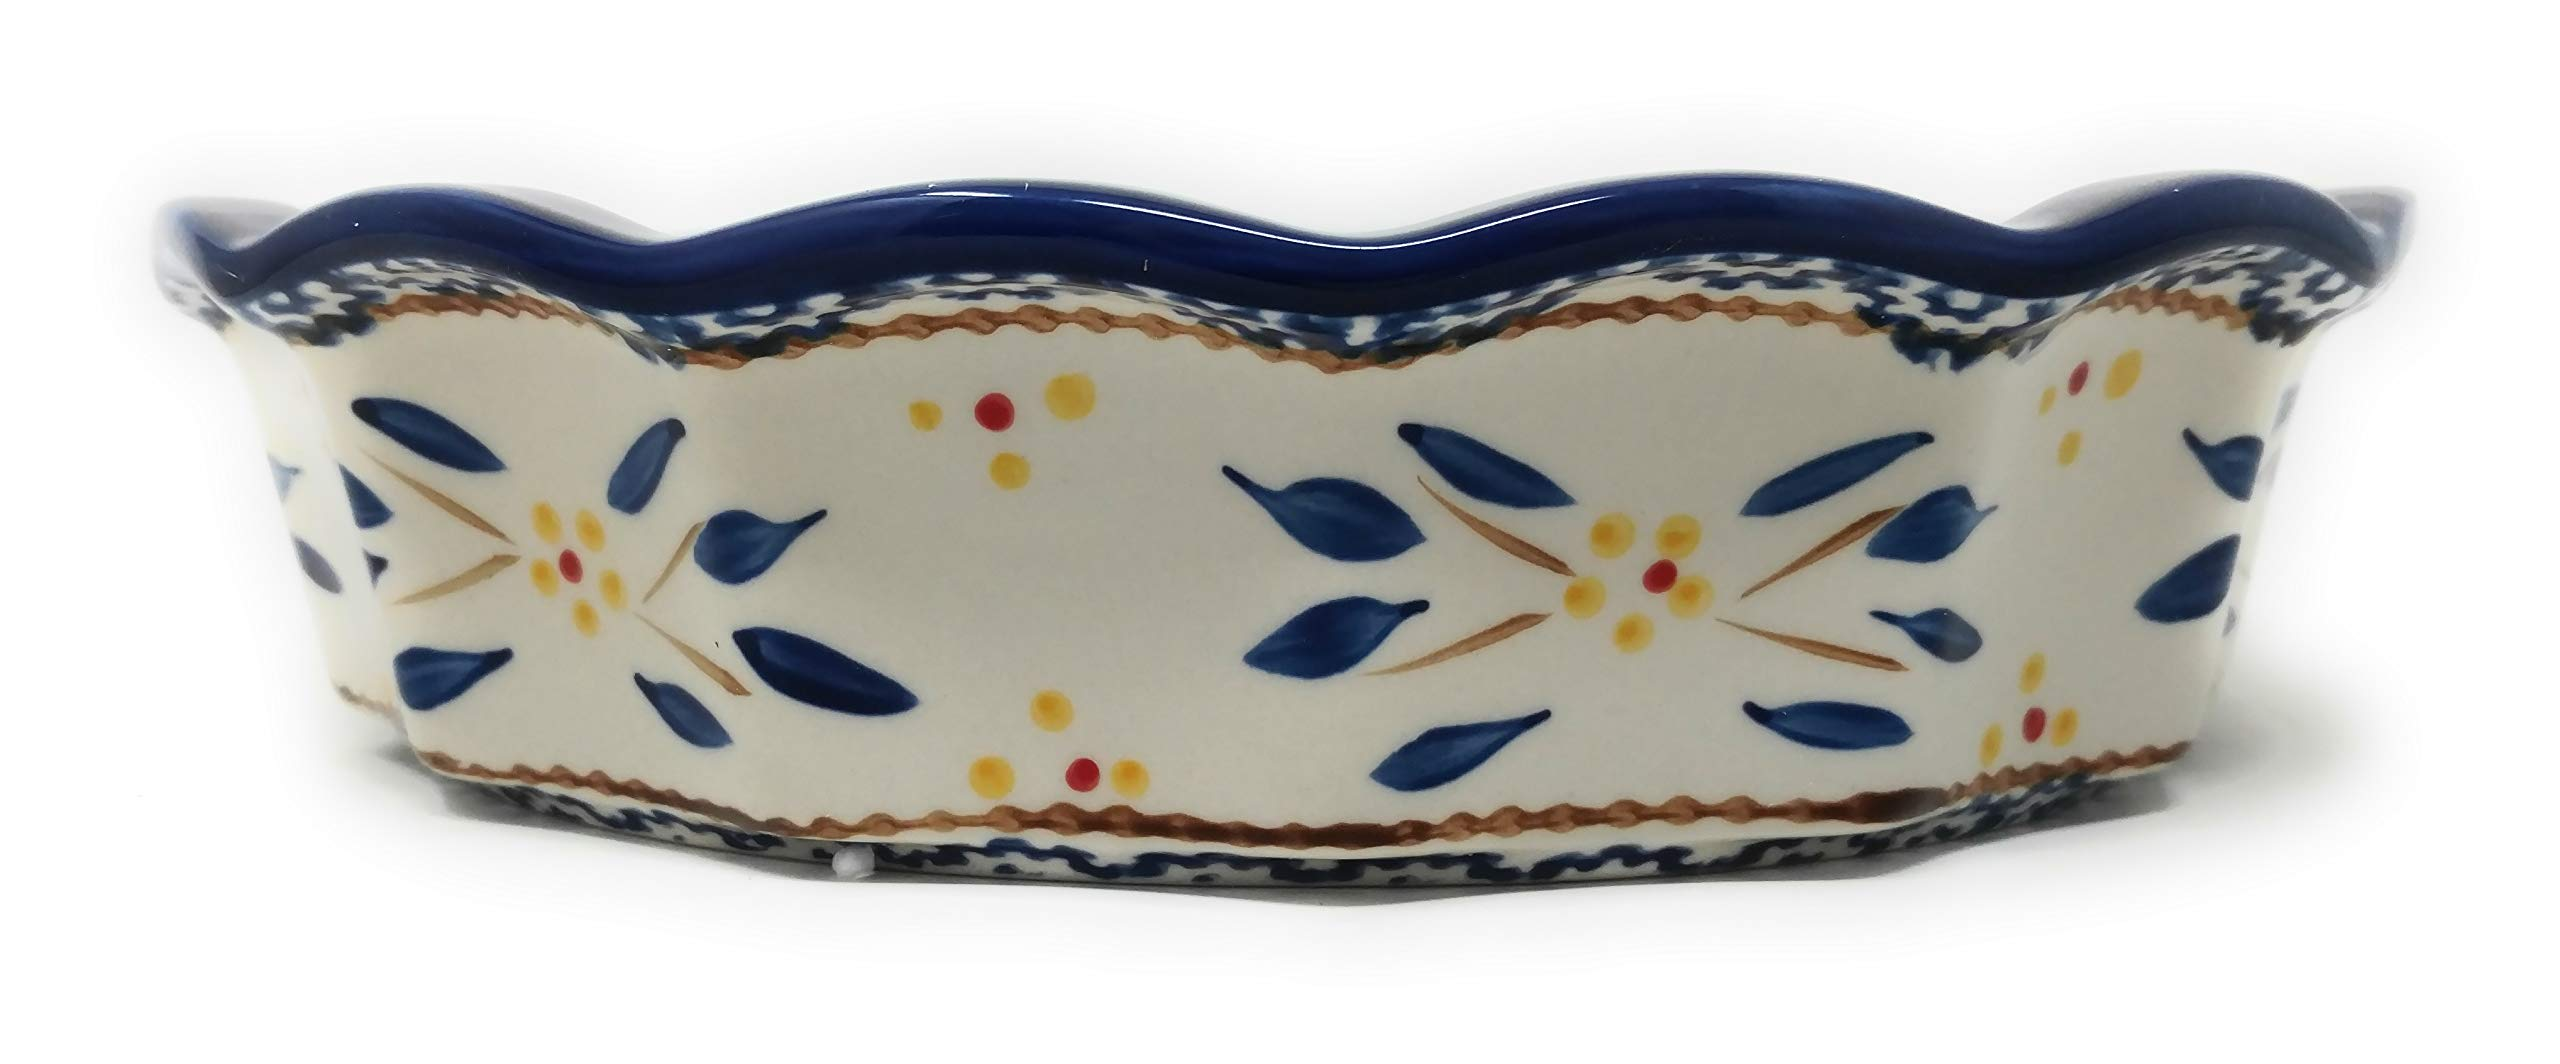 Temp-tations 10'' x 2.25'' Pie Pan w/Cover, Scalloped, Deep Dish Pizza or Quiche (Old World Blue) by Stoneware (Image #3)